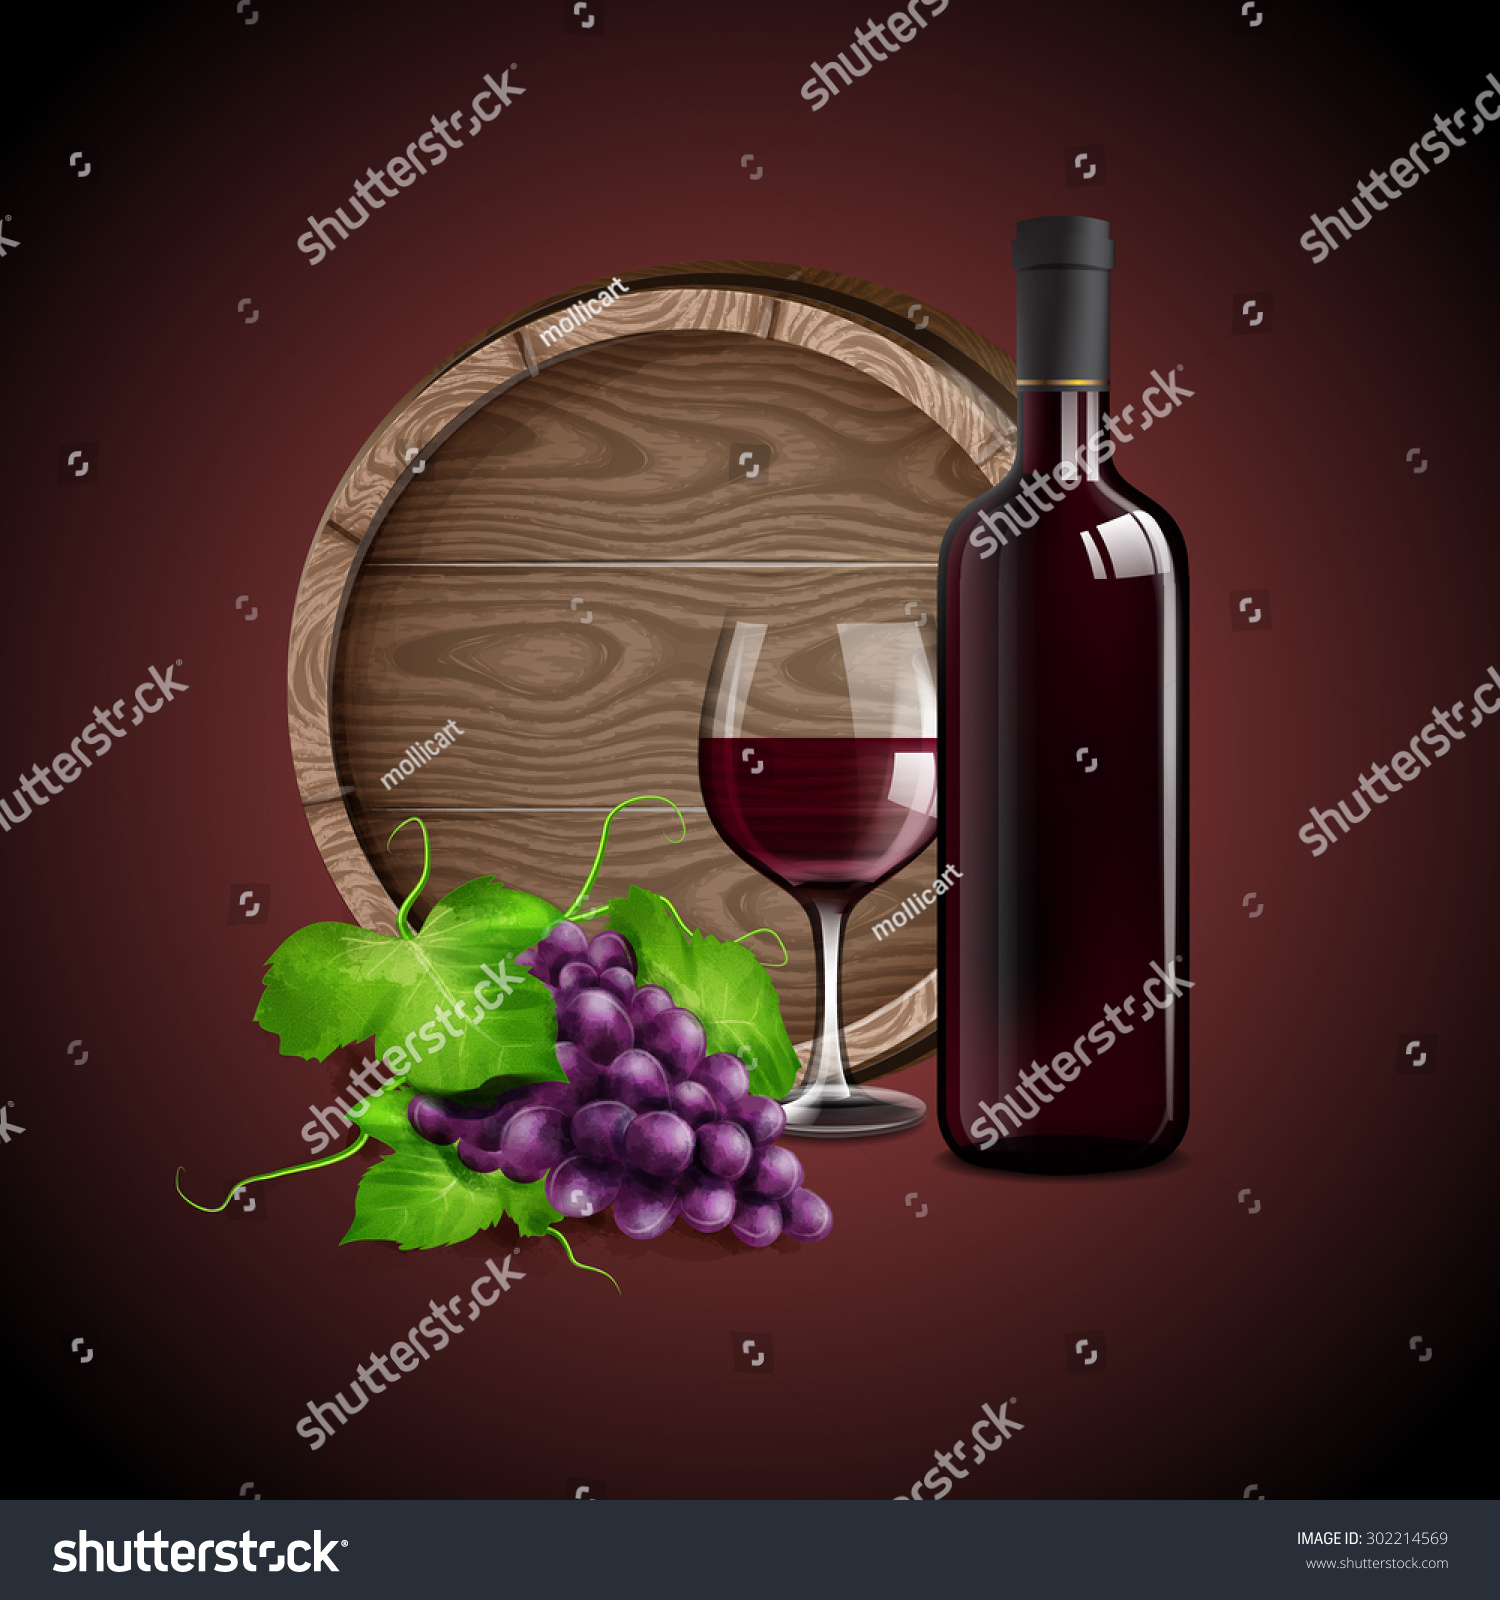 Red Wine Banner Quality Stock Vector Royalty Free 302214569